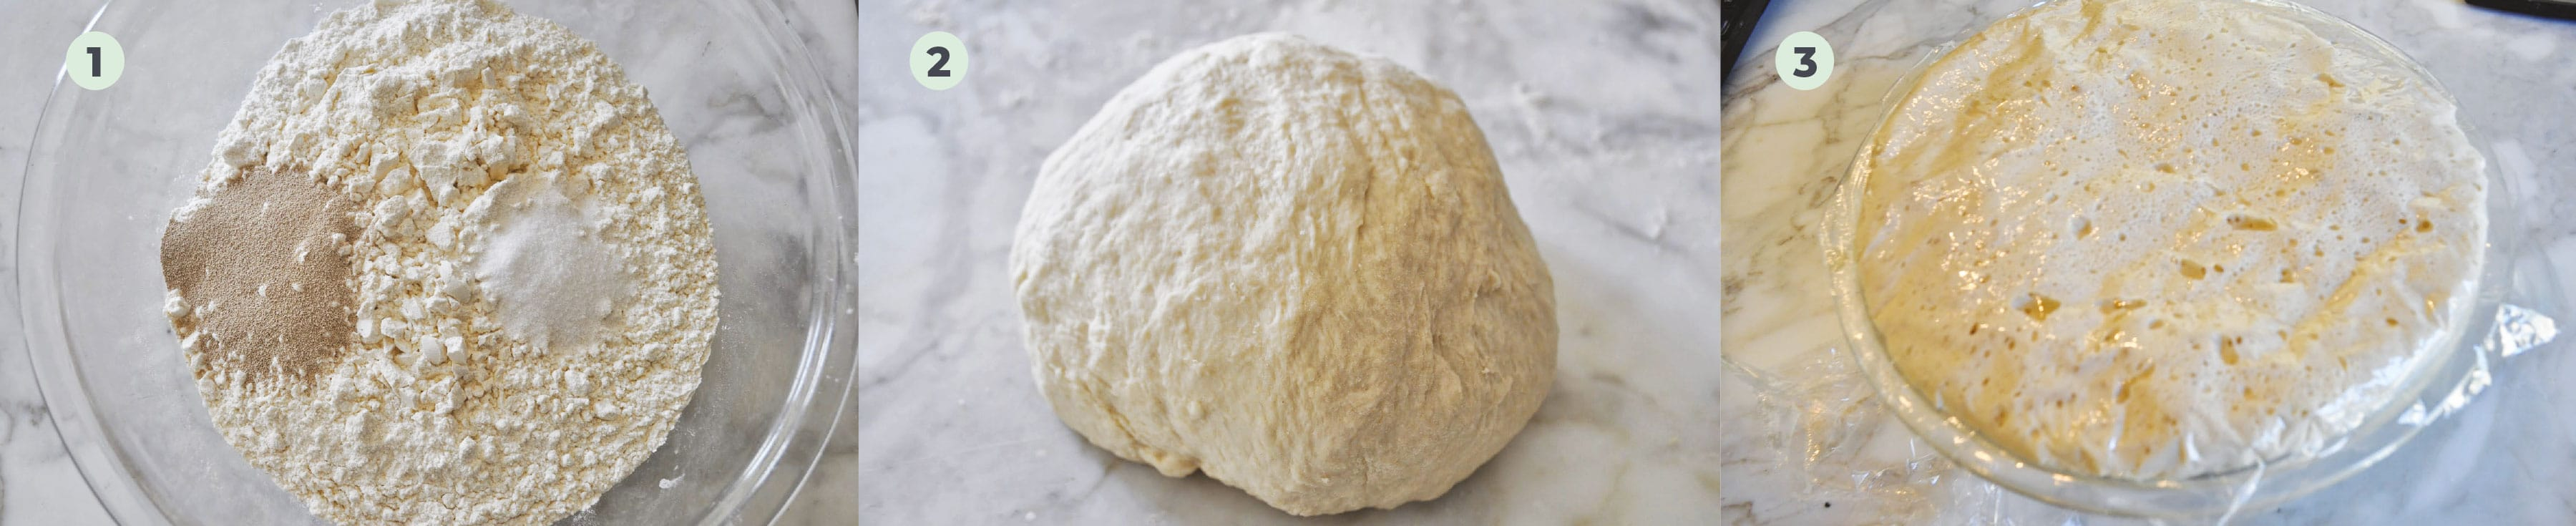 Steps to make Pizza from the scratch